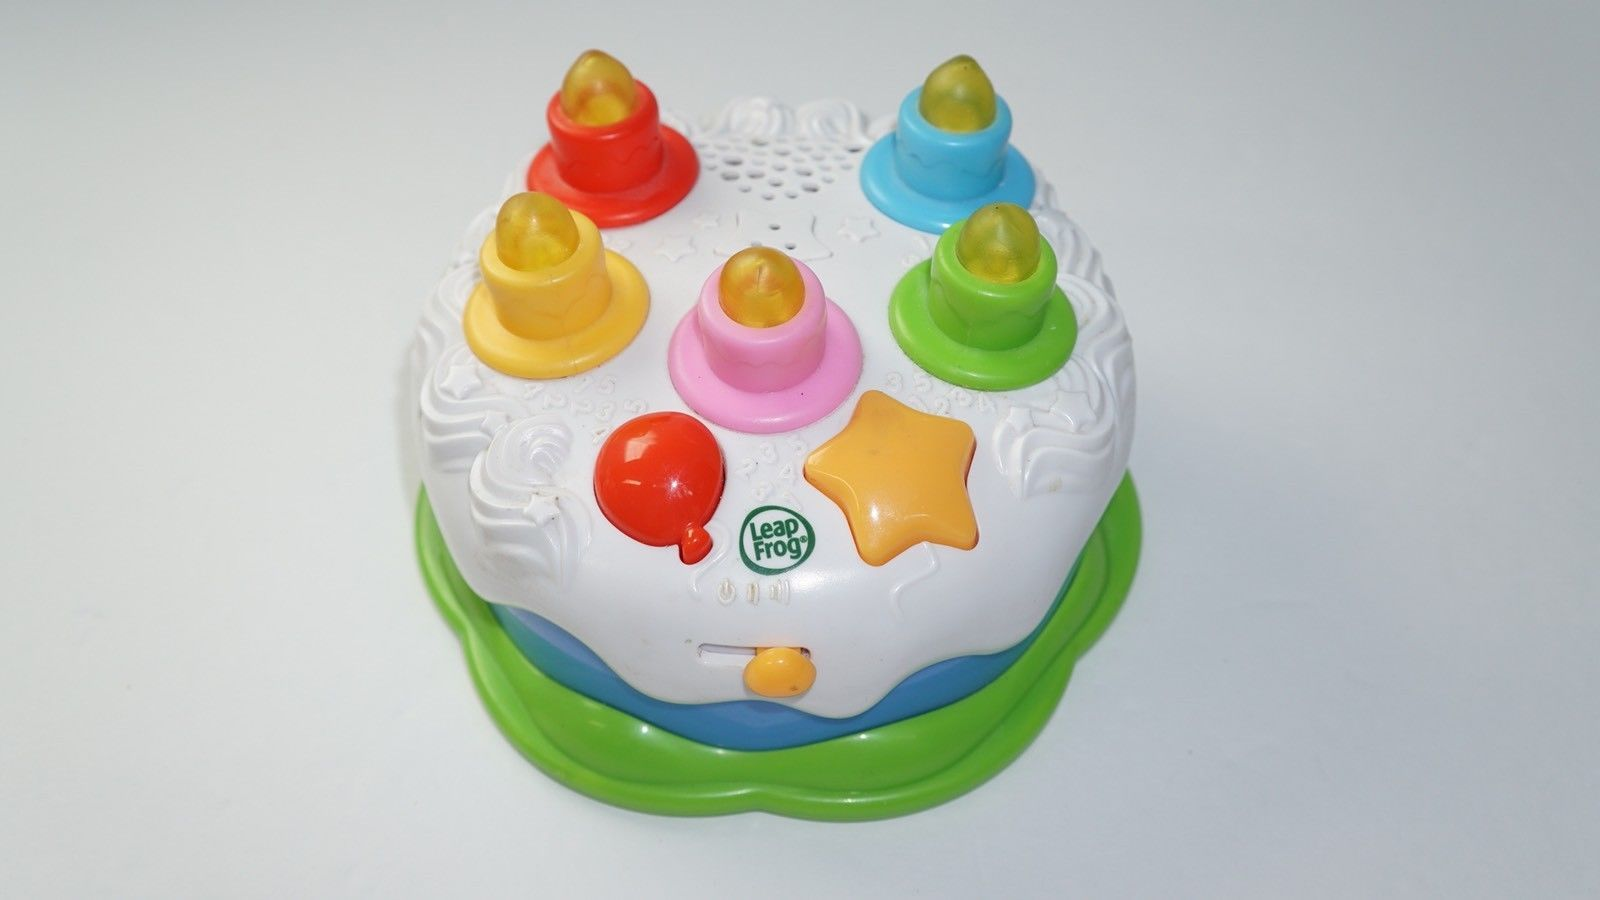 LeapFrog Birthday Cake Counting Candles And 16 Similar Items S L1600